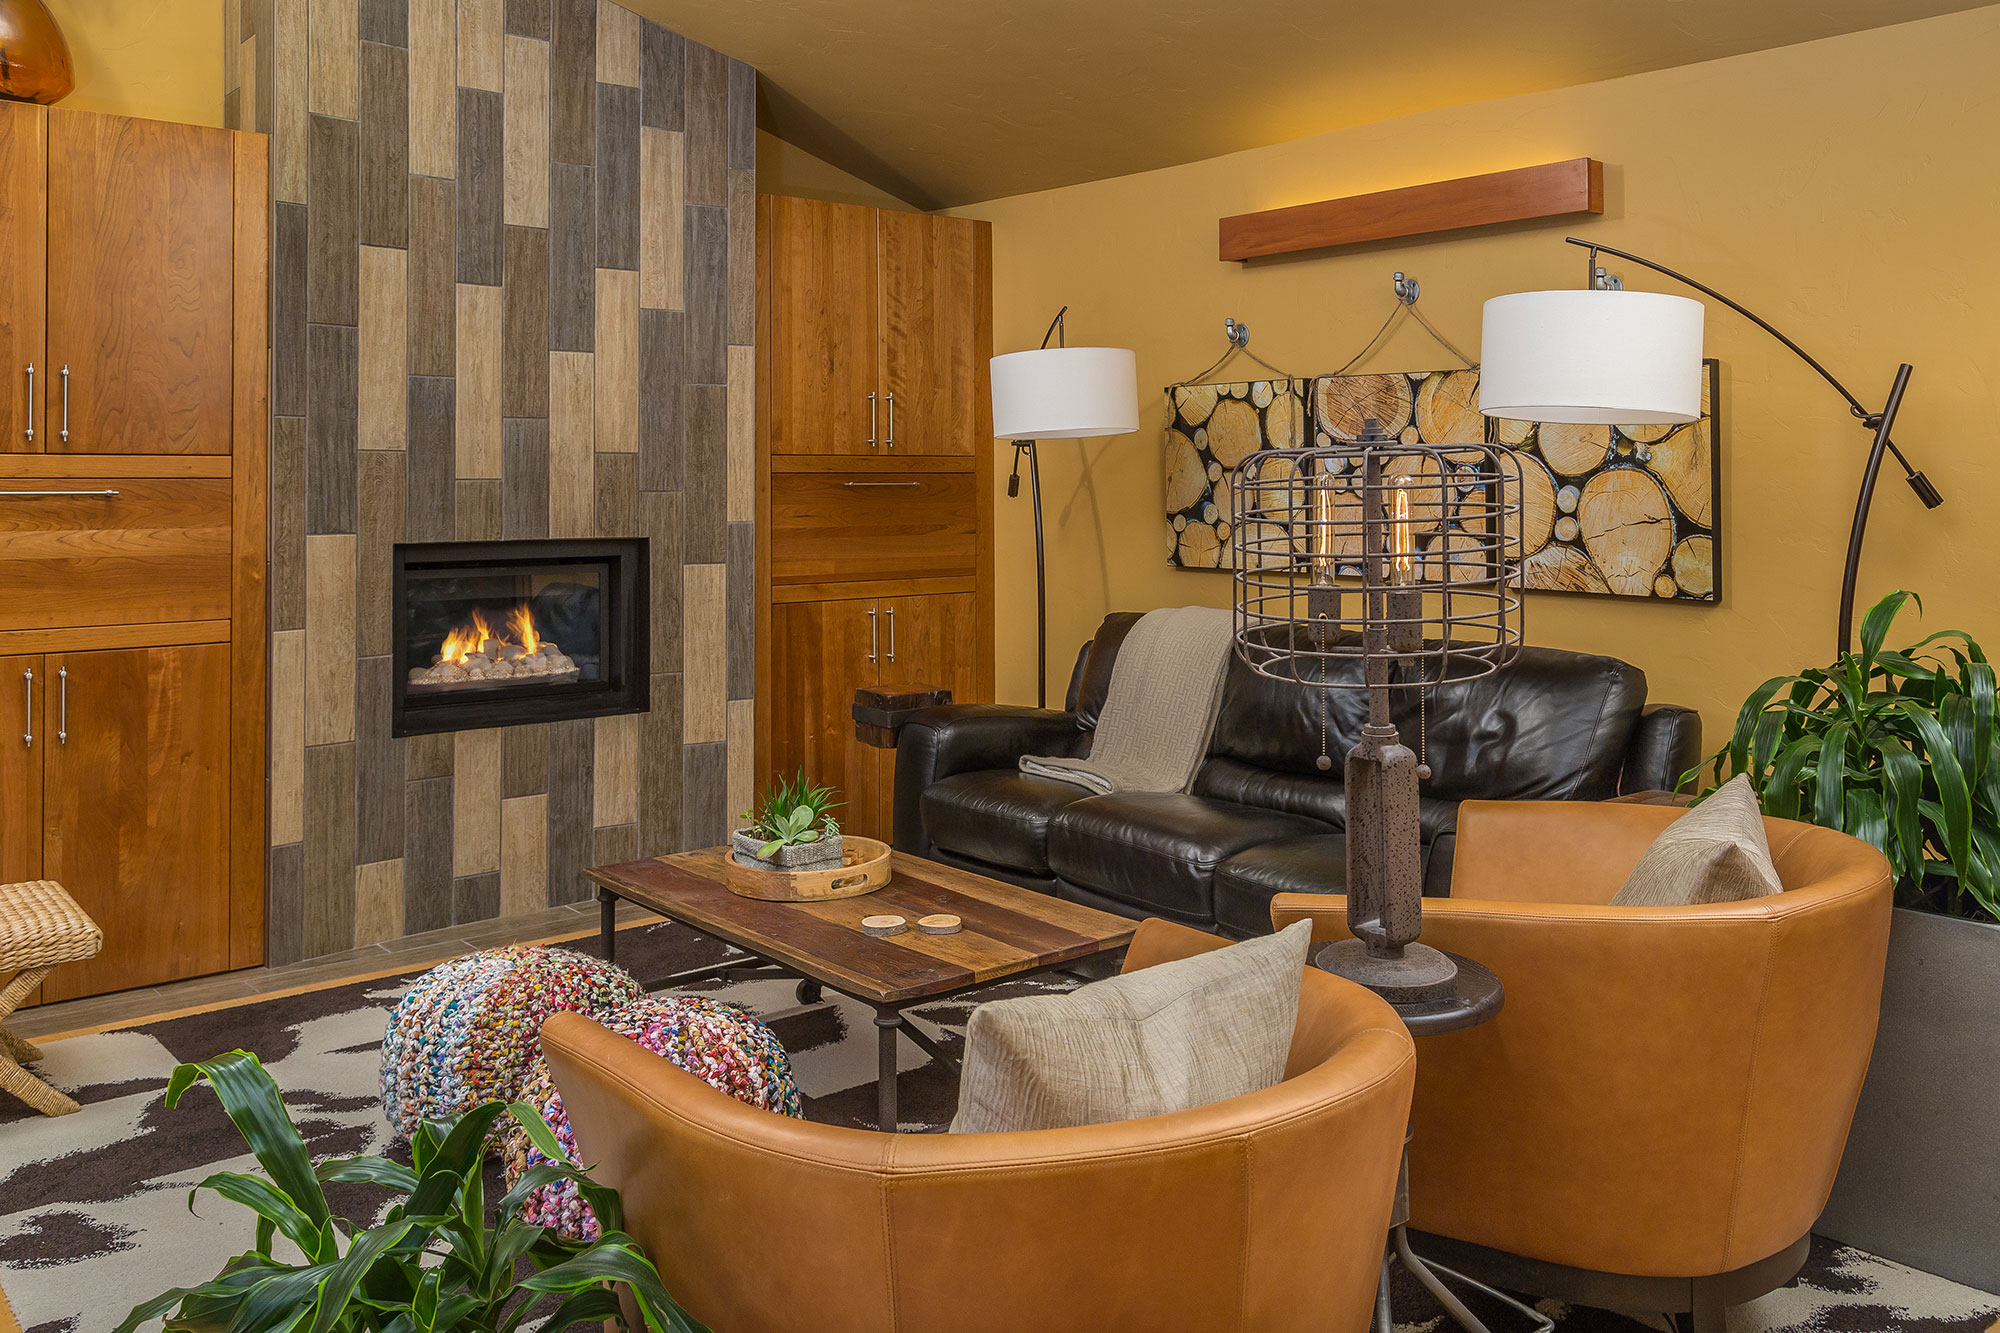 Sears living room and fireplace